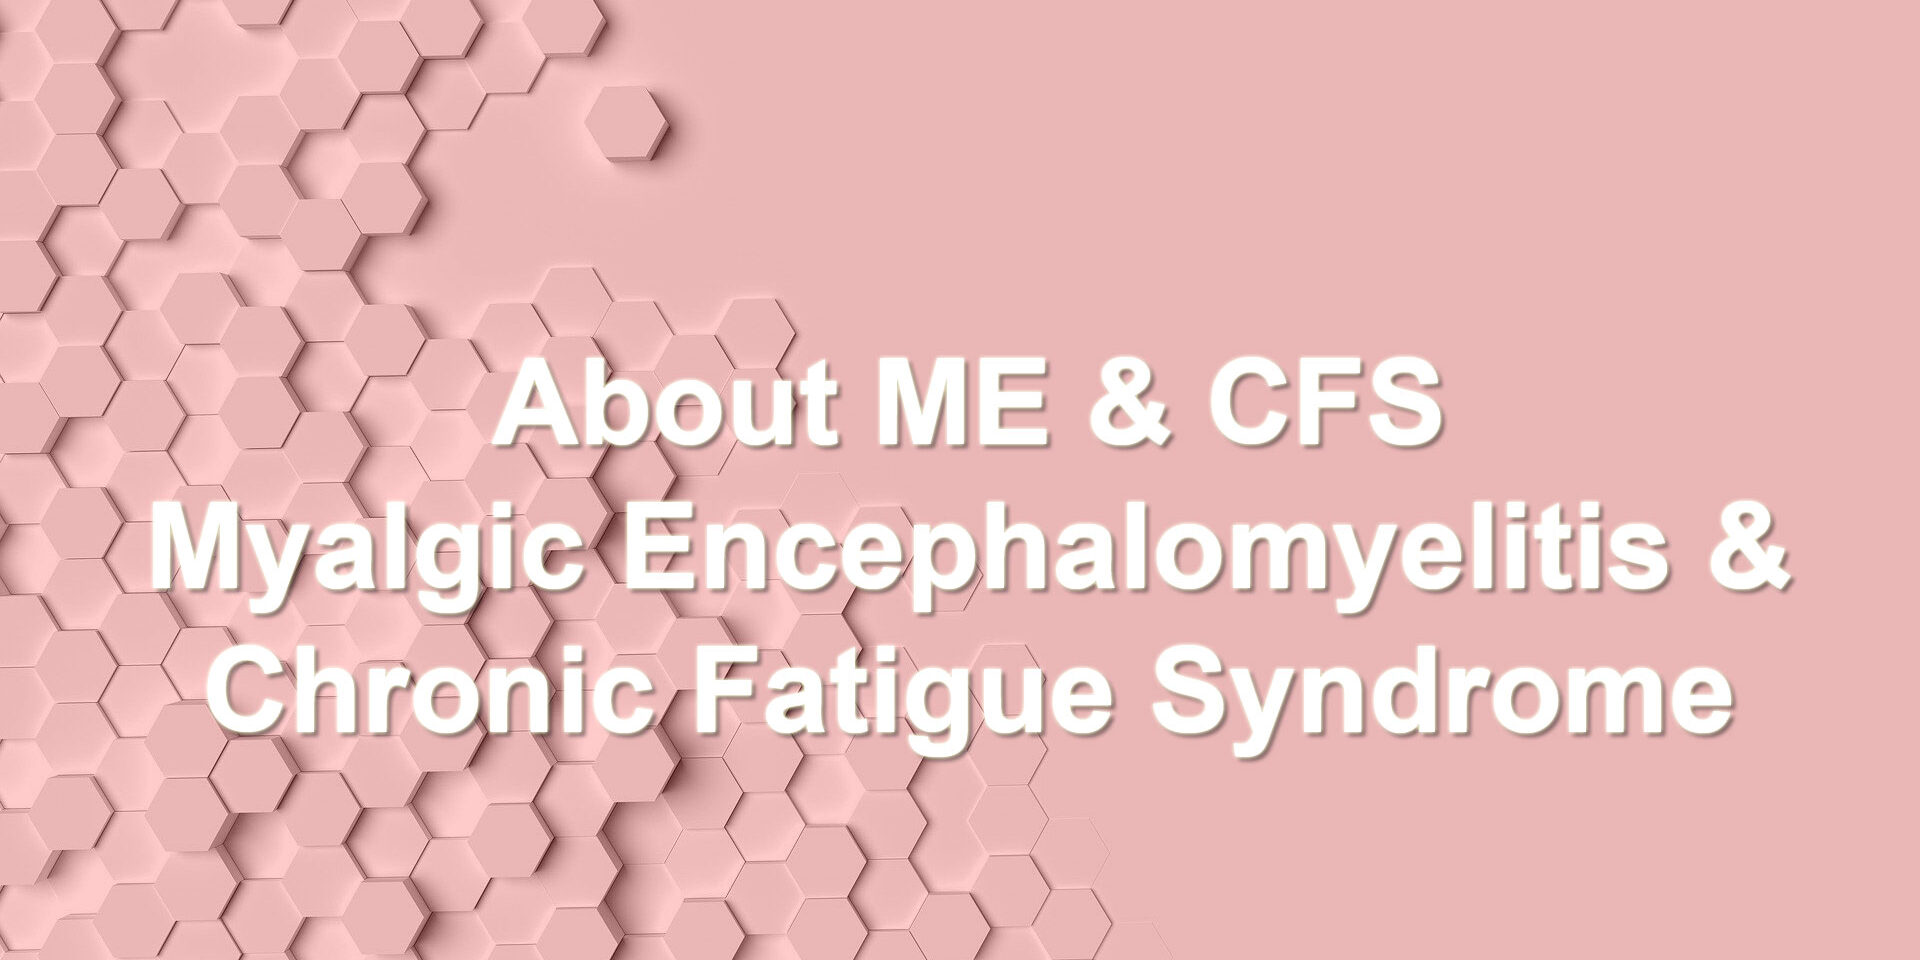 About ME and CFS hexagonal blocks on a pink background